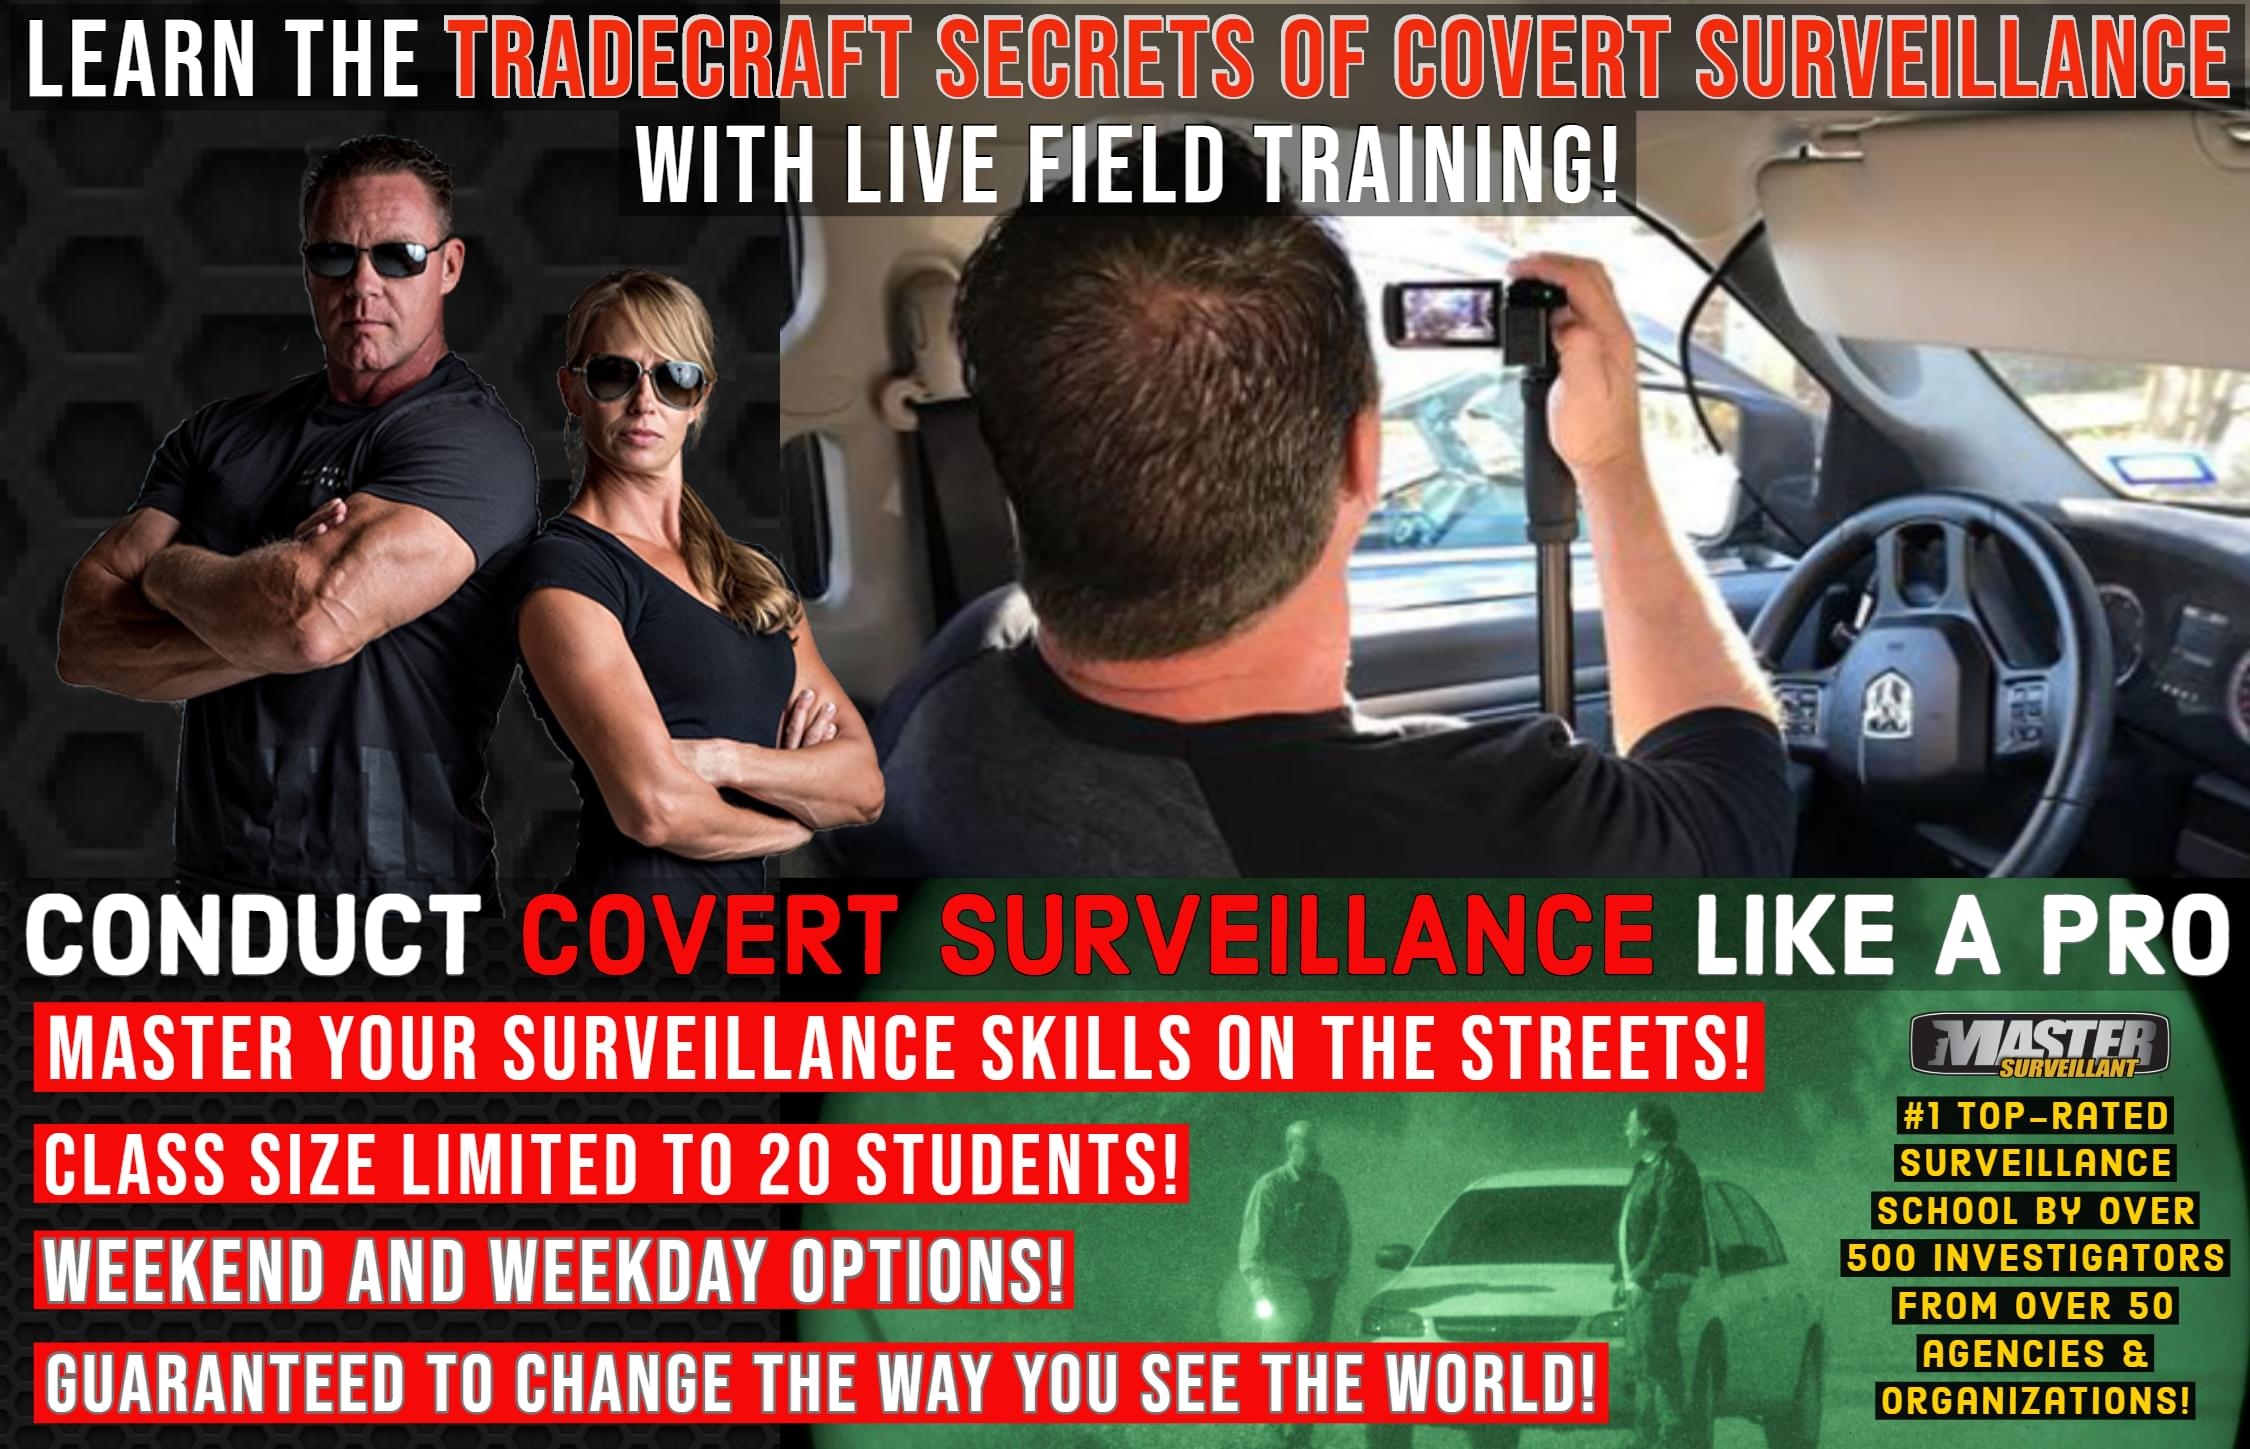 Tradecraft Secrets of Covert Surveillance Operators Course